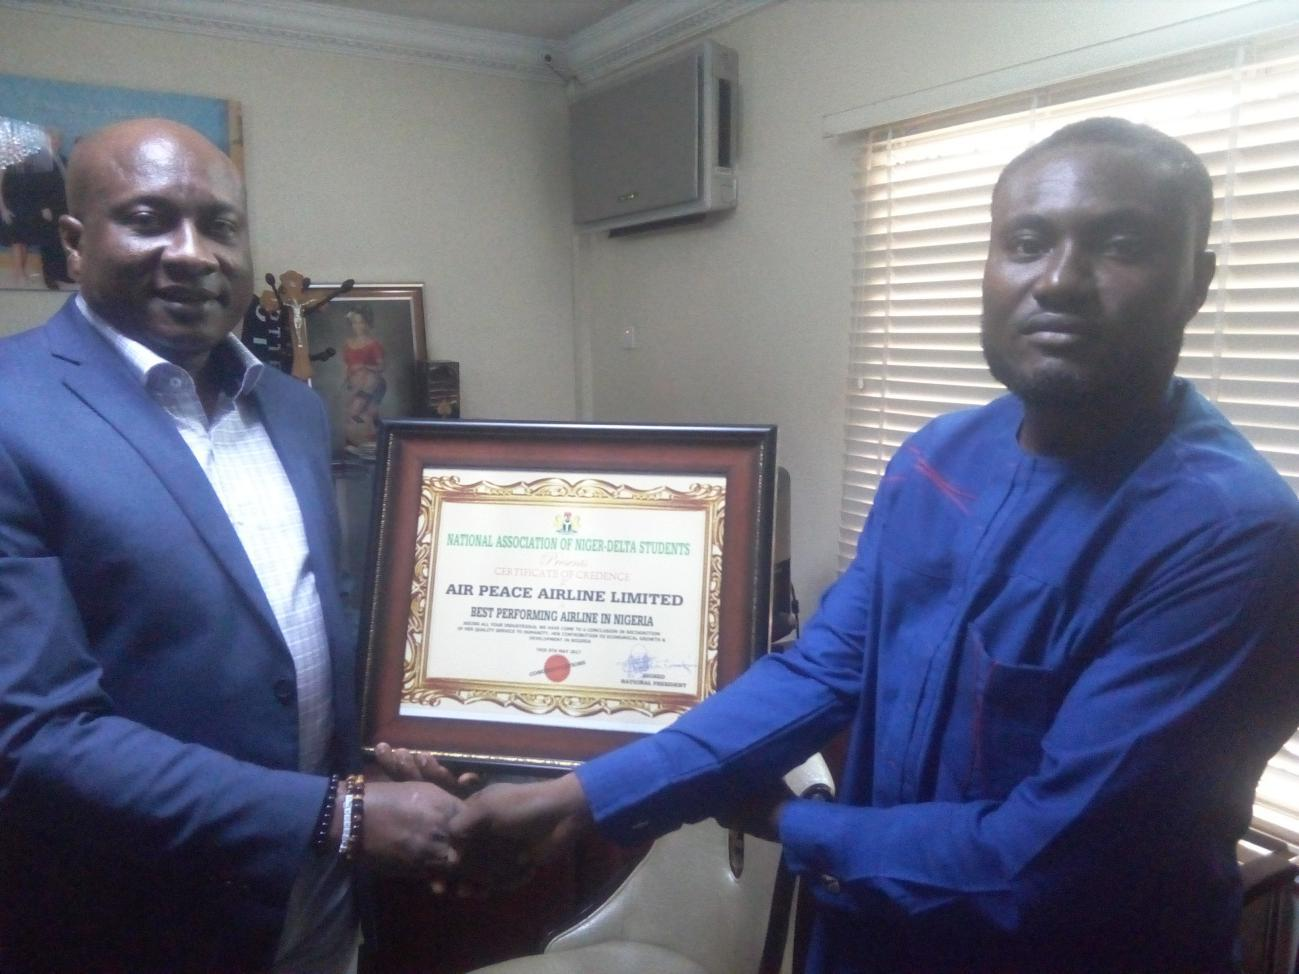 Air Peace Chairman/Chief Executive Officer, Barr. Allen Onyema (left) receiving the 'Best Performing Airline in Nigeria' award from the National President of the National Association of Niger-Delta Students, Comrade Martins Abebe at the airline's corporate headquarters in Lagos recently.